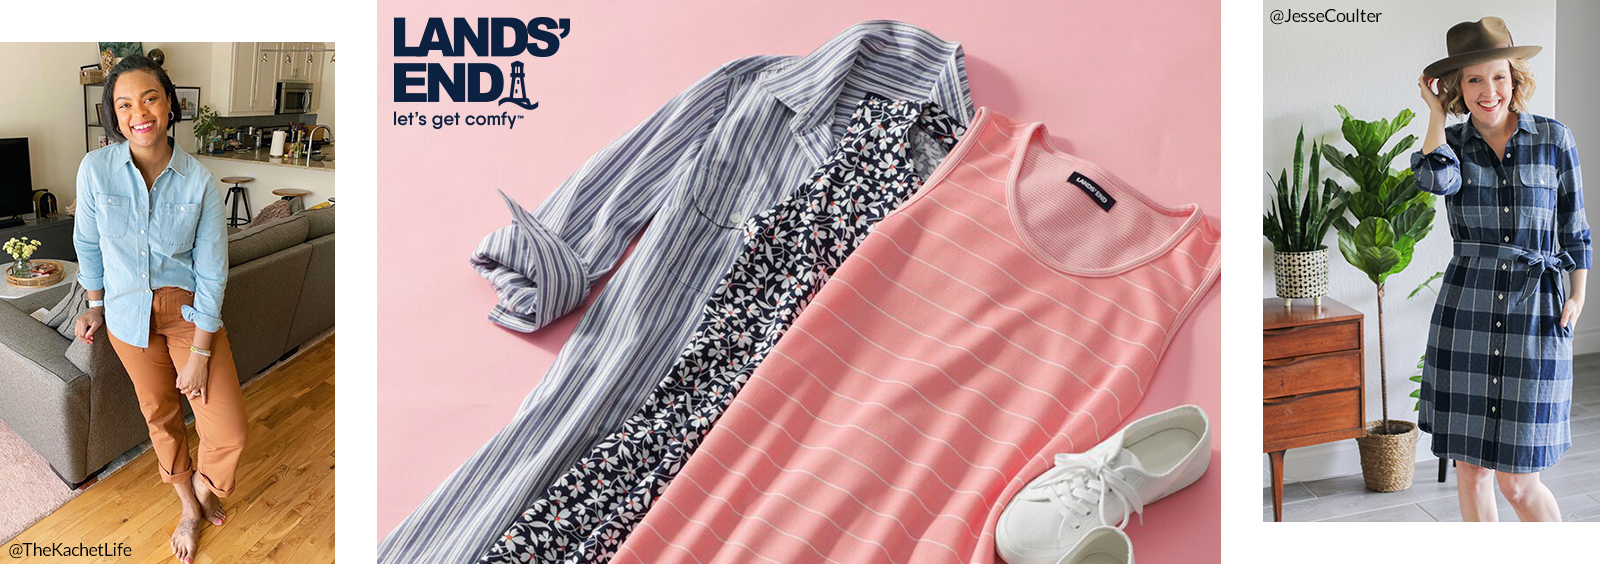 Best Comfy Cotton Clothes to Beat the Heat